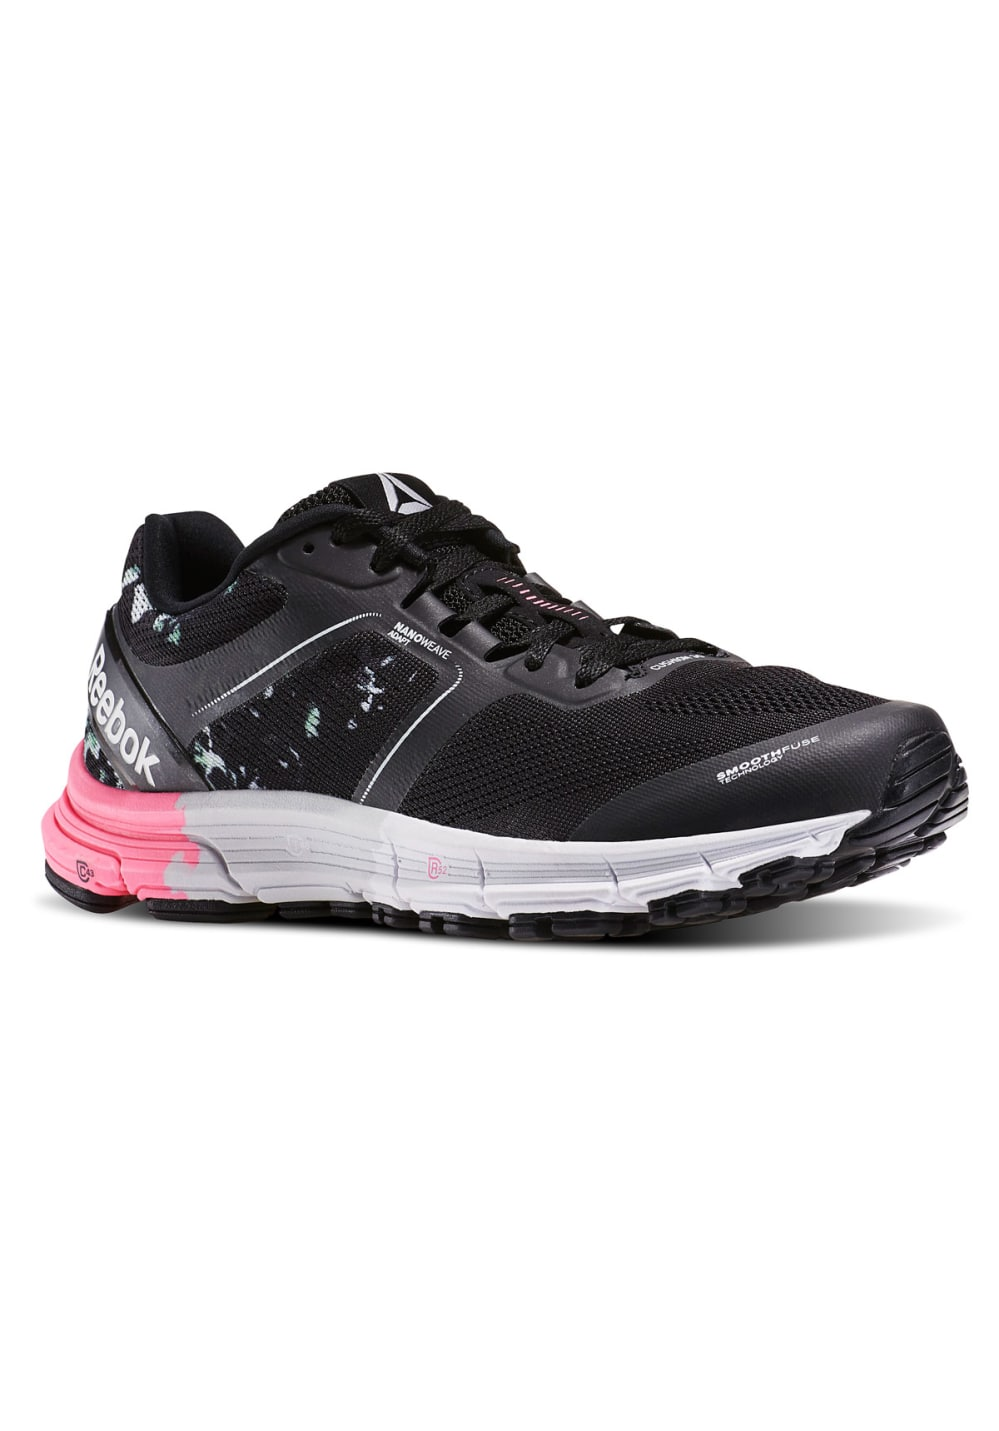 One Fitness Femme Reebok Cushion Pour Chaussures Noir mN80vnw